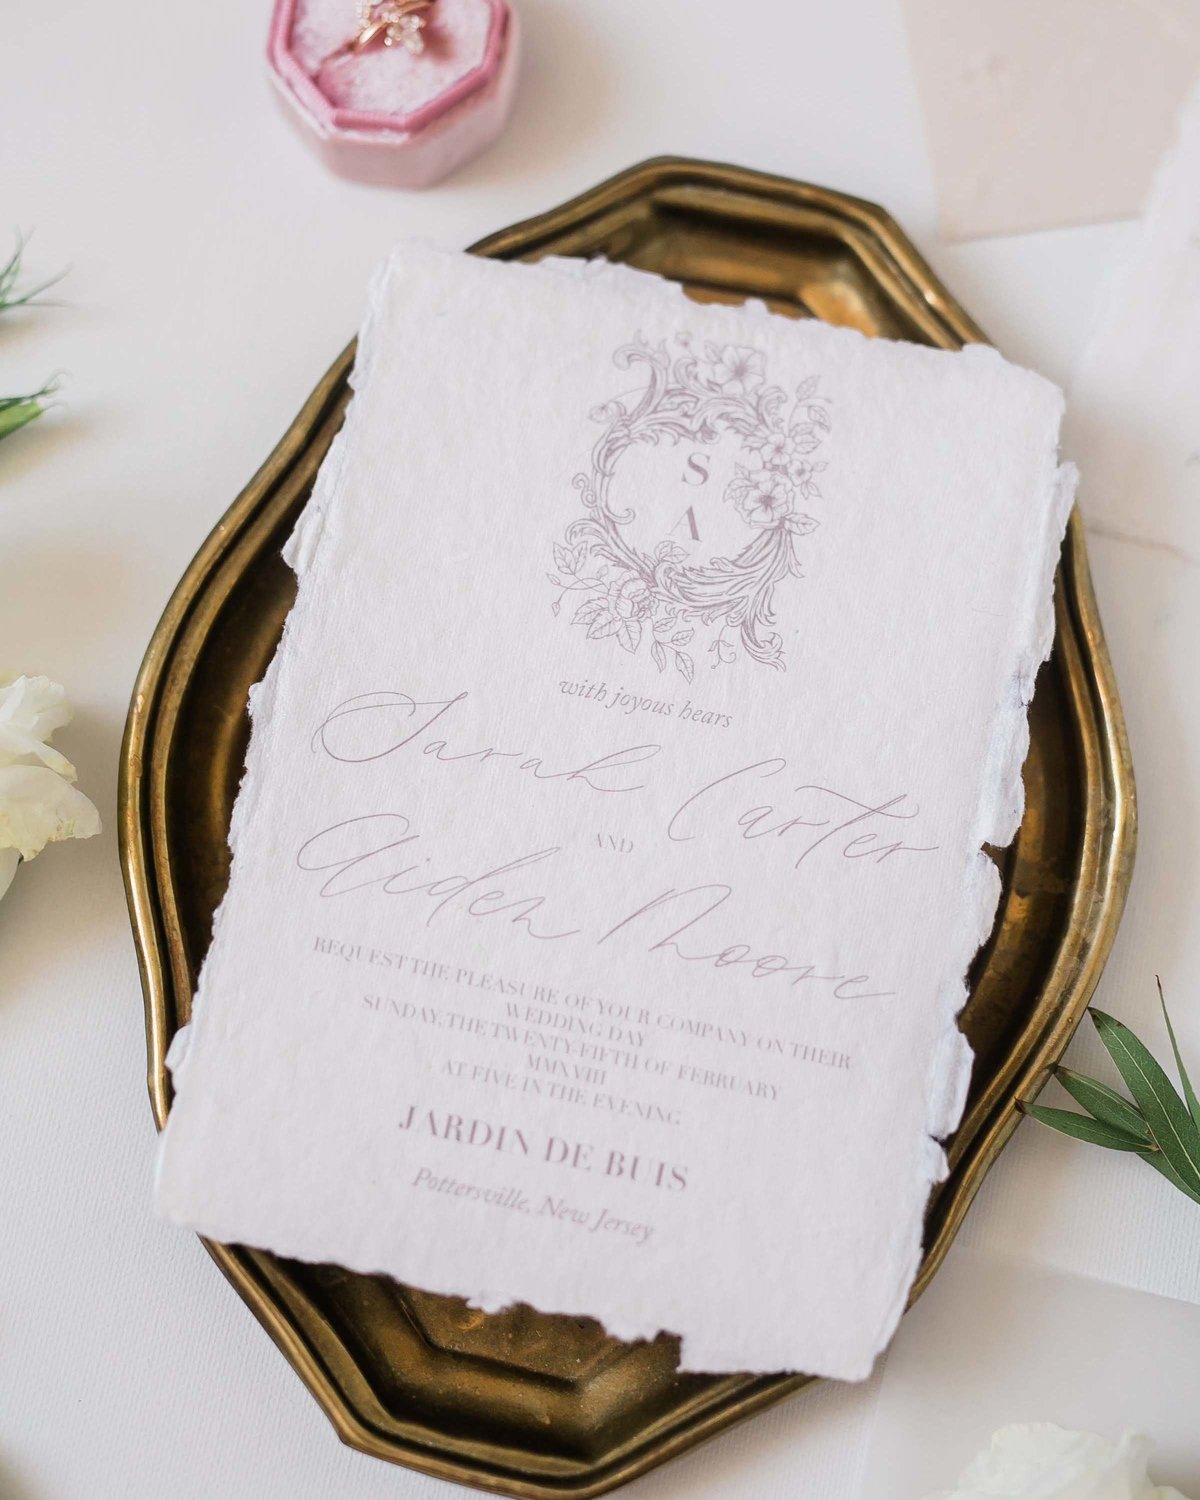 Plume & Fete romantic fine art wedding invitation suite invite card with wedding crest